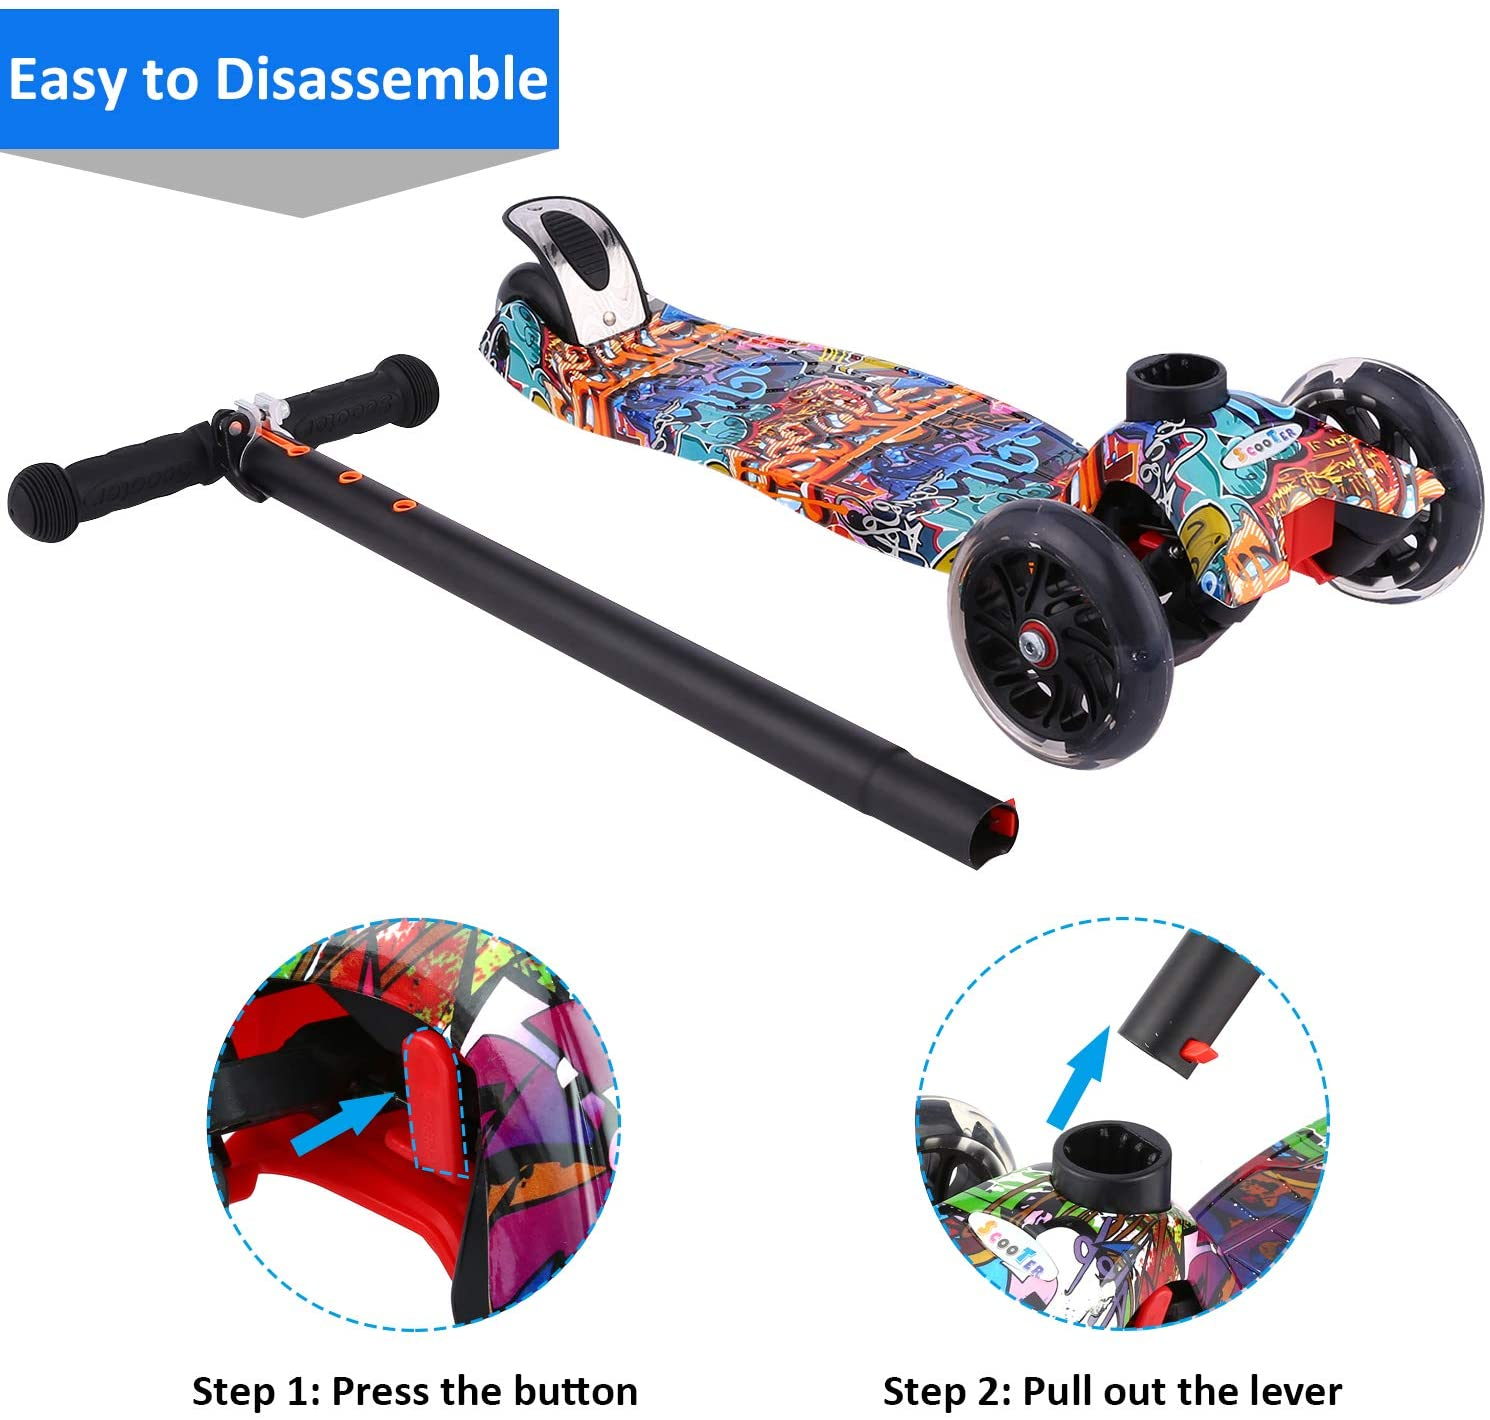 Kick Scooter for Toddlers Girls /& Boys with LED Light Up Scooters Wheels Hikole Scooter for Kids Adjustable Height Scooter for Children Ages 3-12